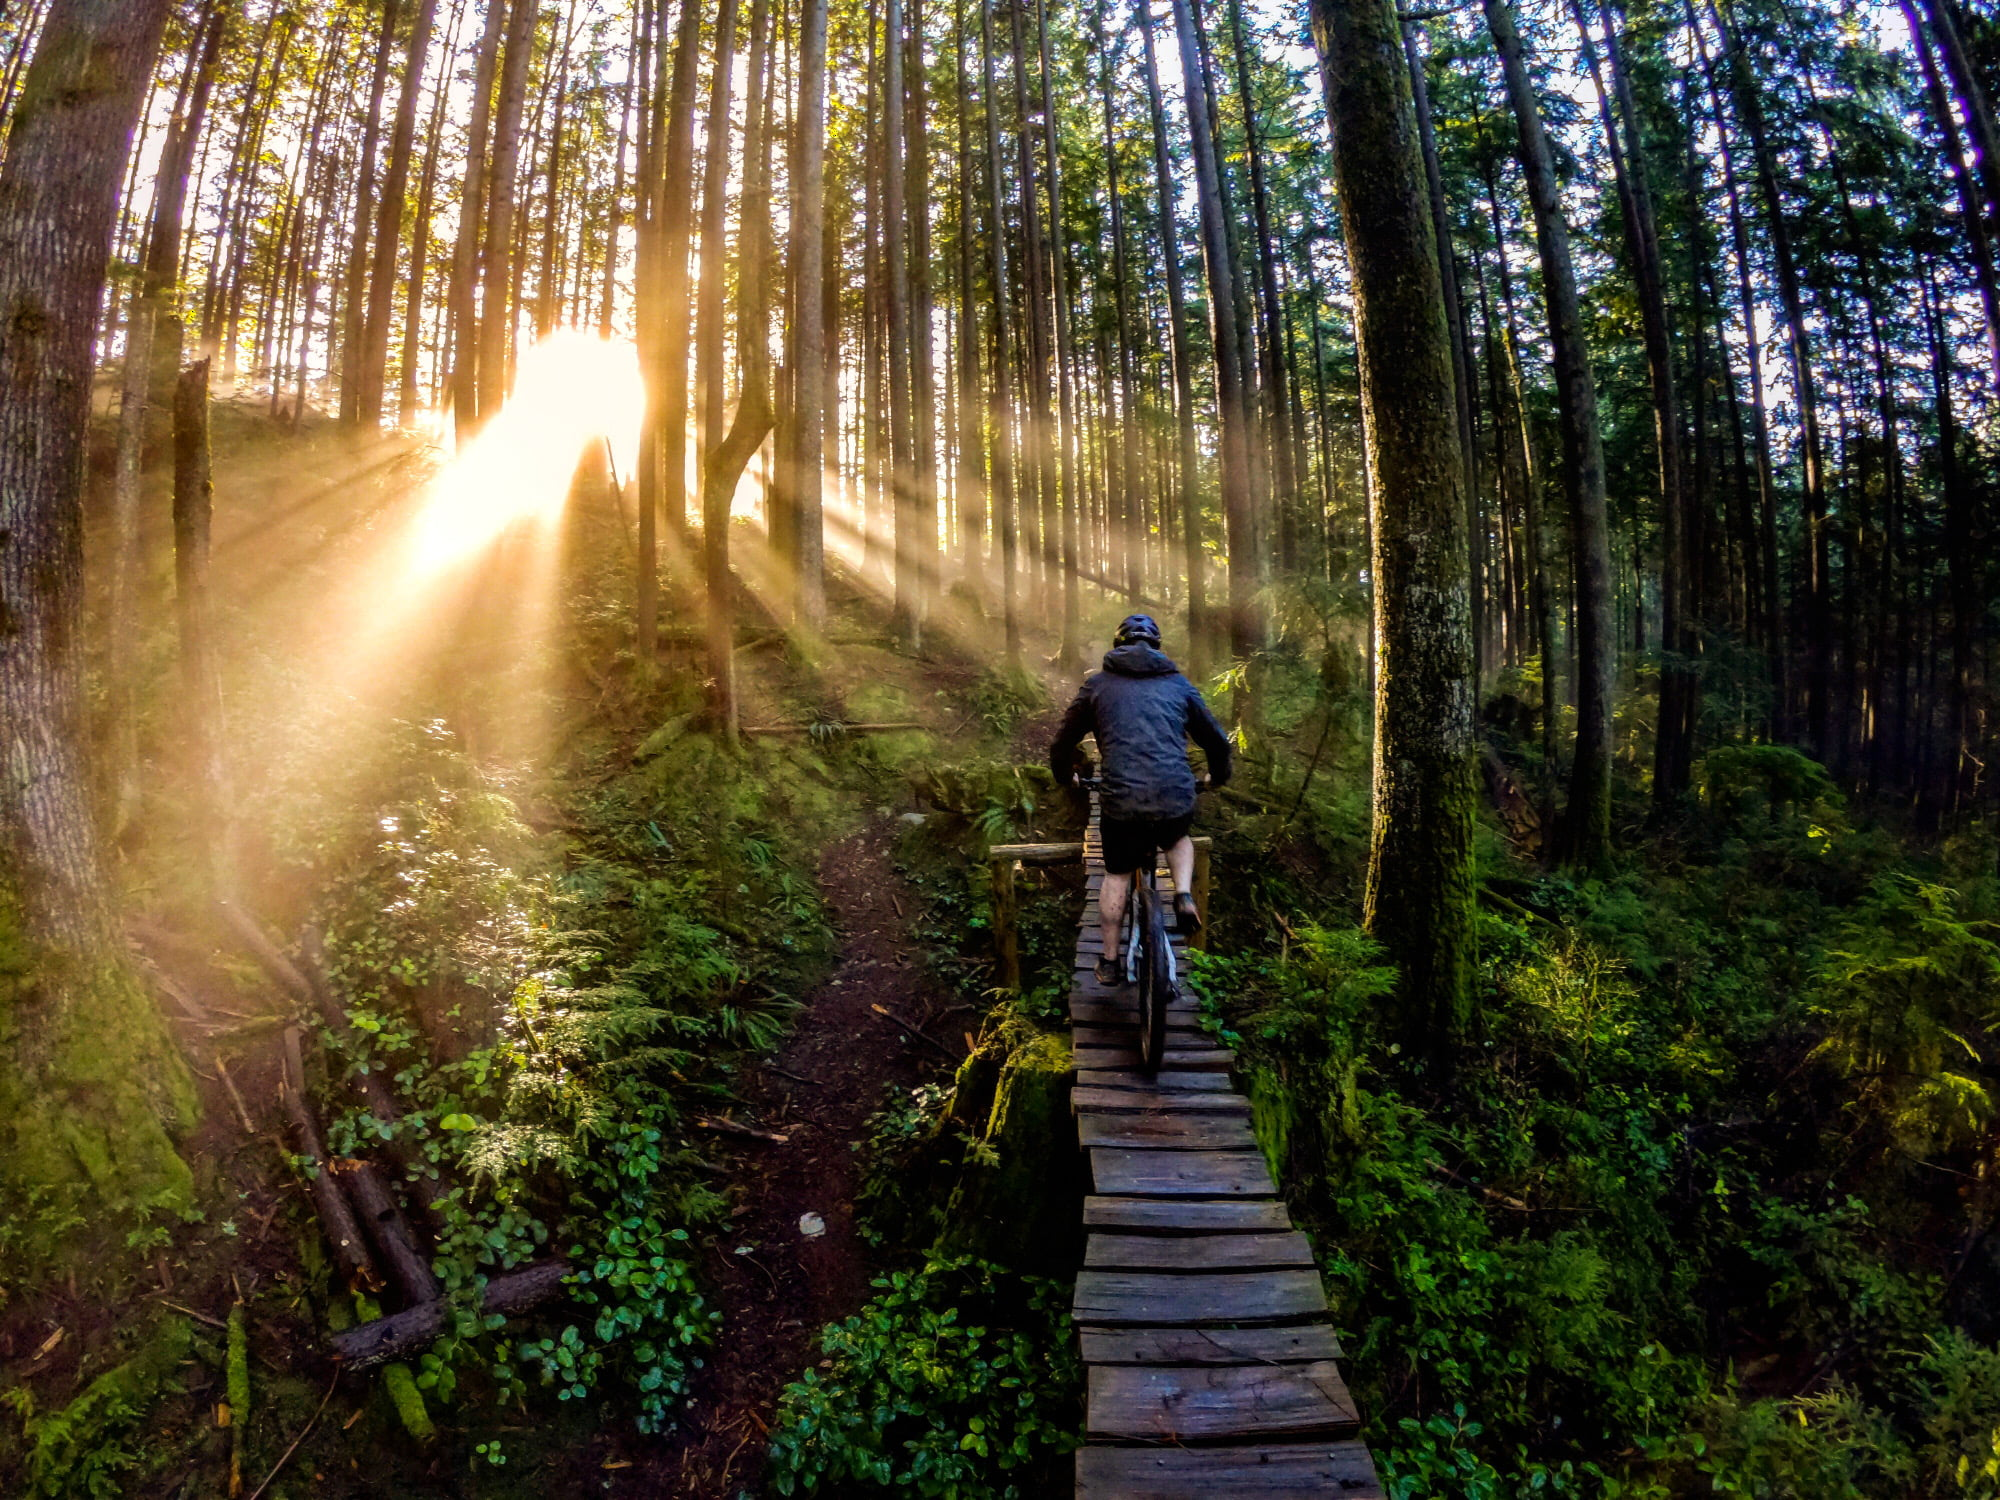 North Shore Mountain Biking Adventures – Freeride On Fromme And Shredding Seymour